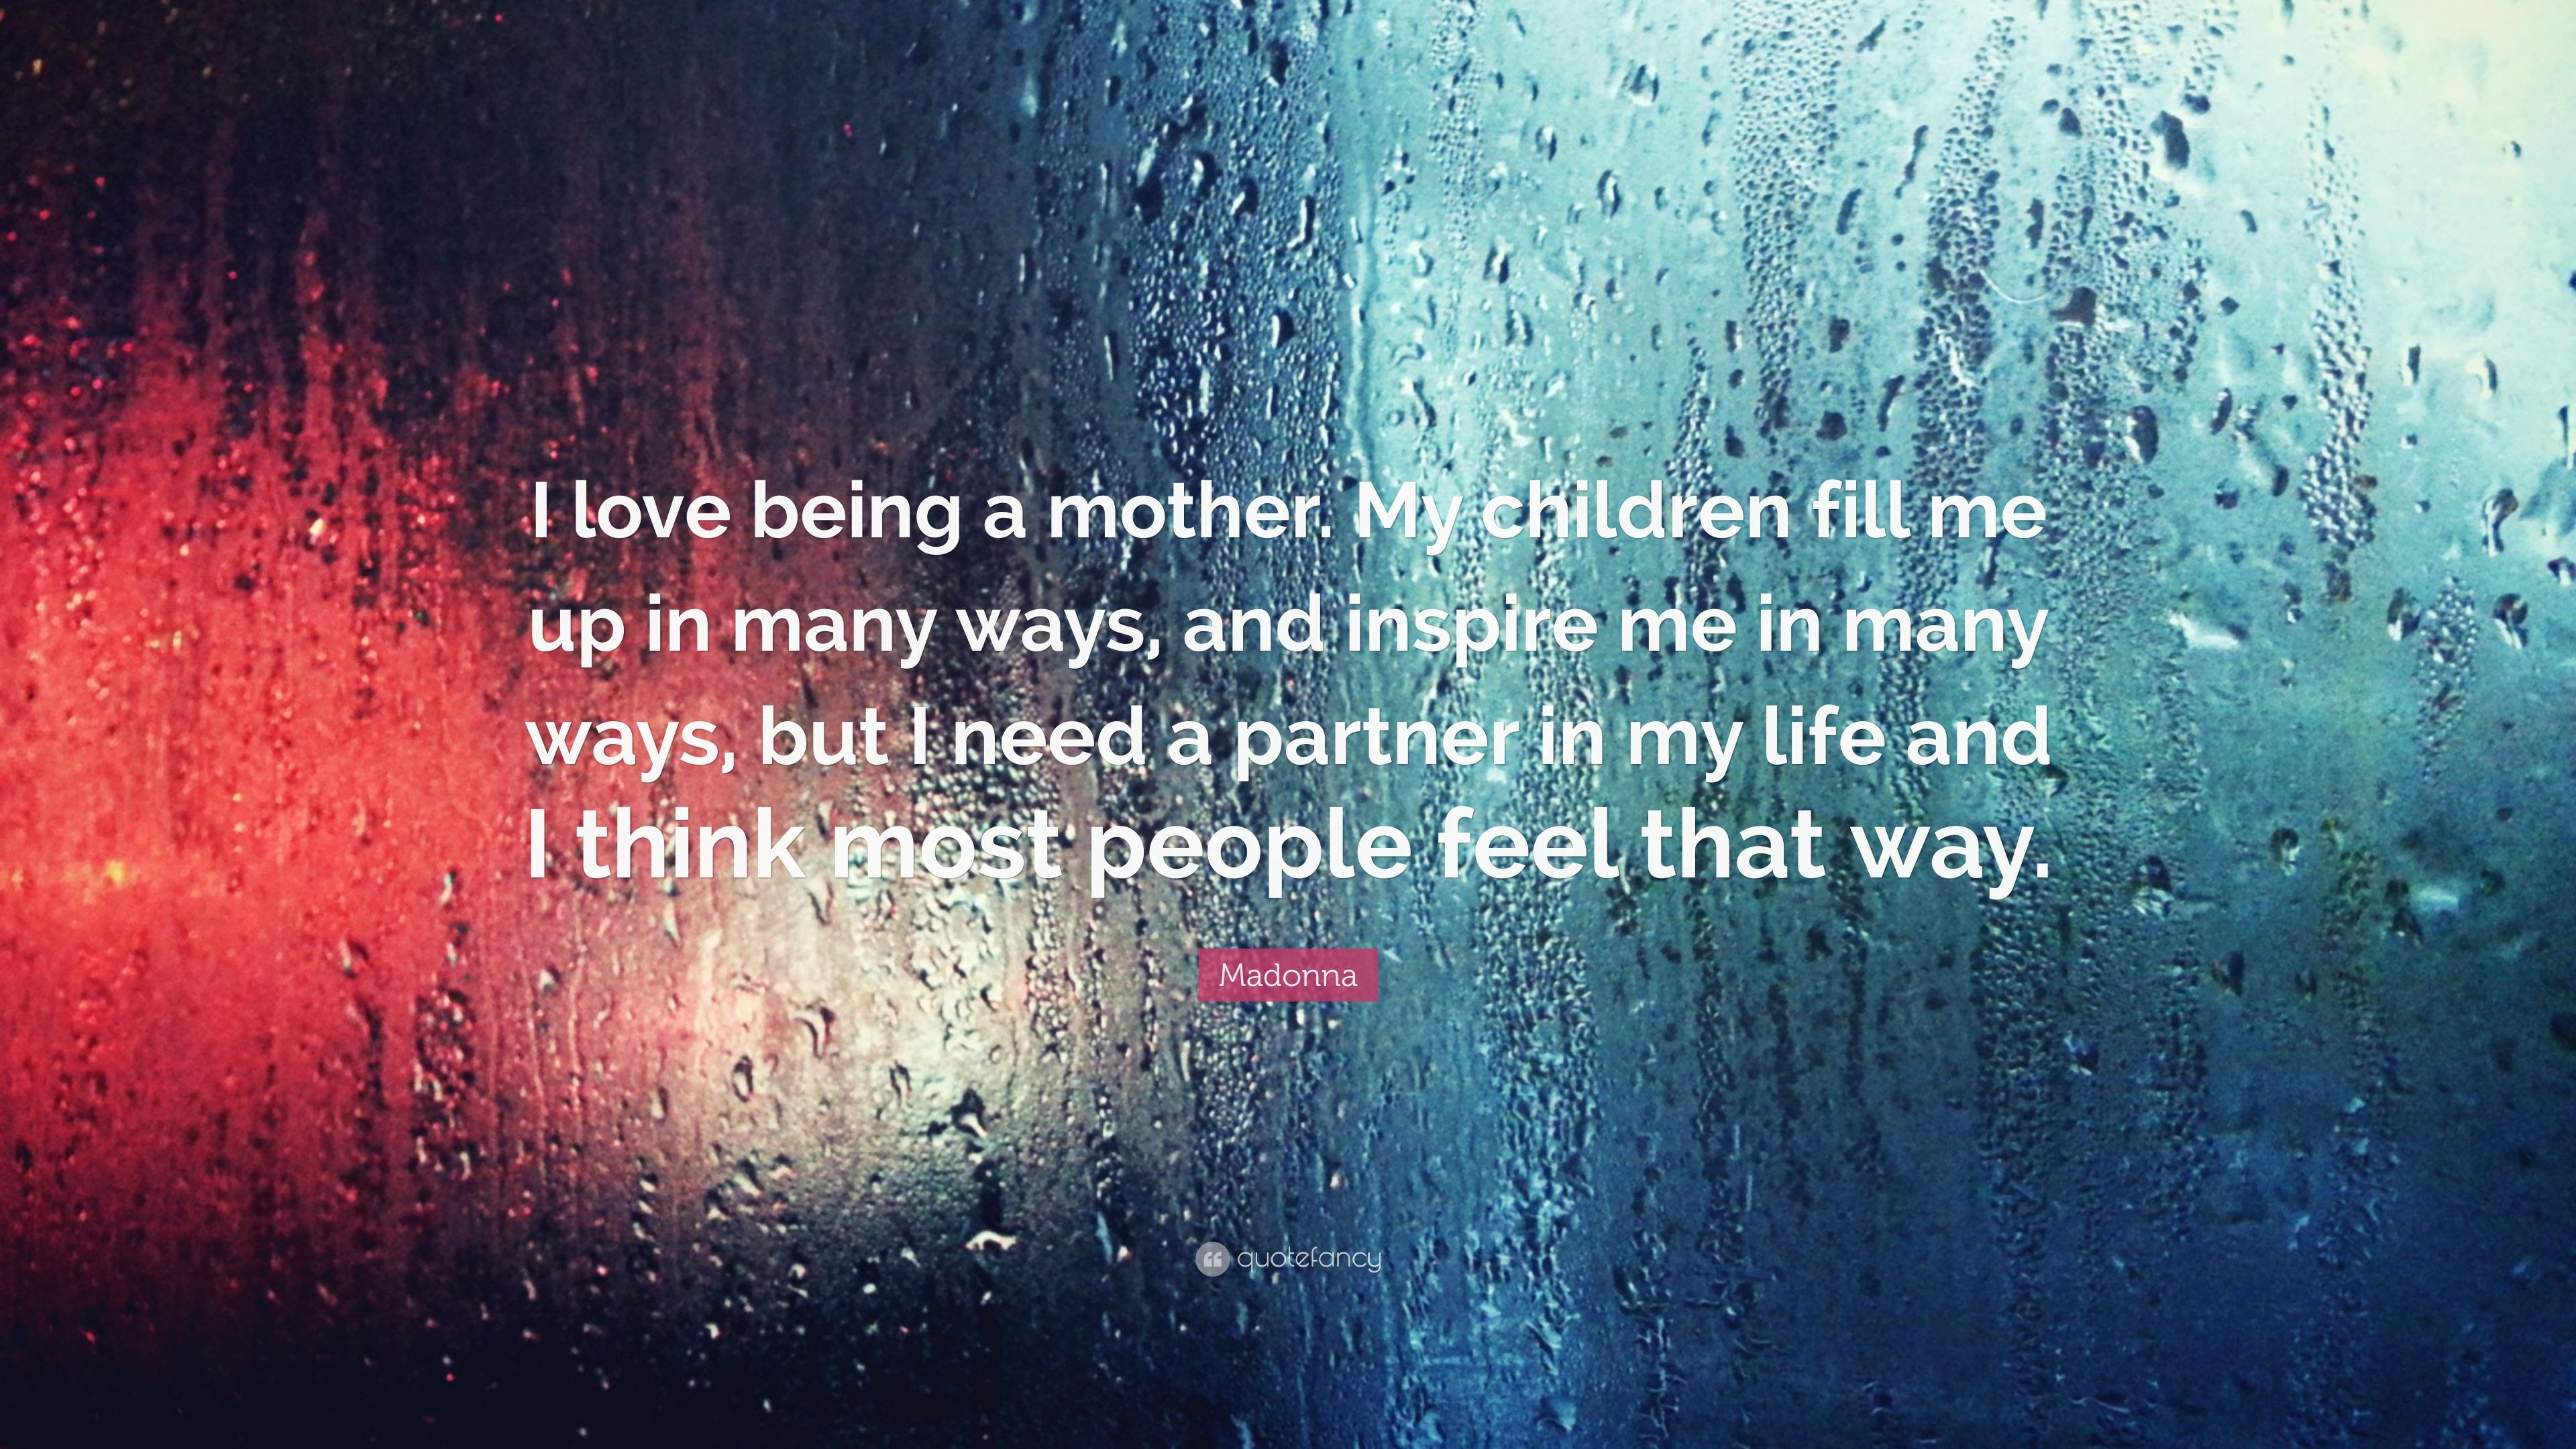 Madonna Quote: U201cI Love Being A Mother. My Children Fill Me Up In